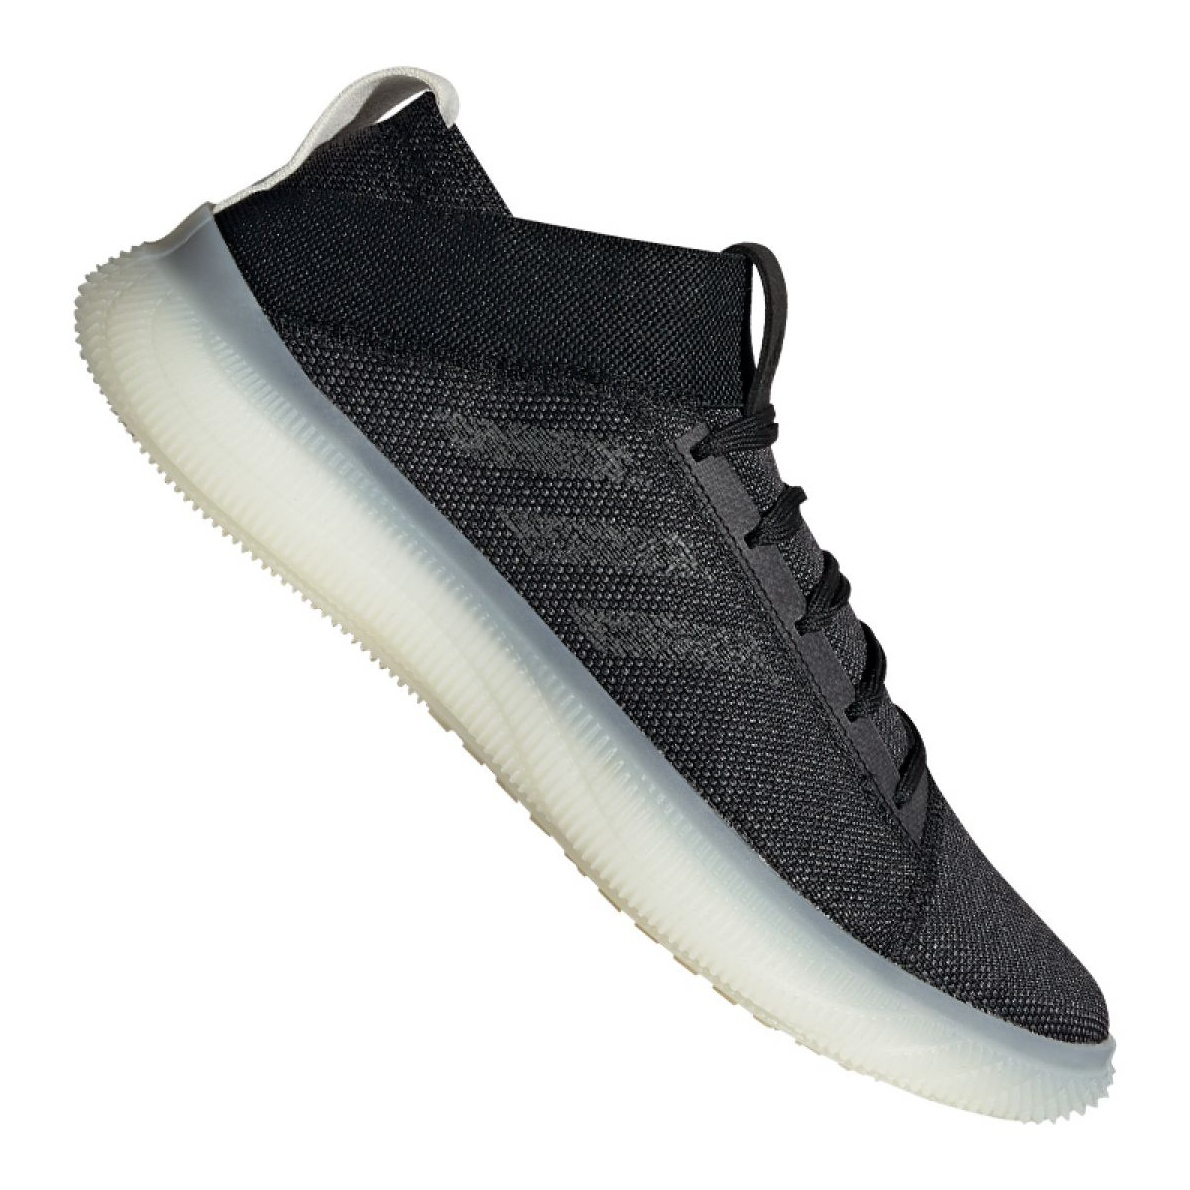 Details about Adidas PureBOOST Trainer M DB3389 shoes black